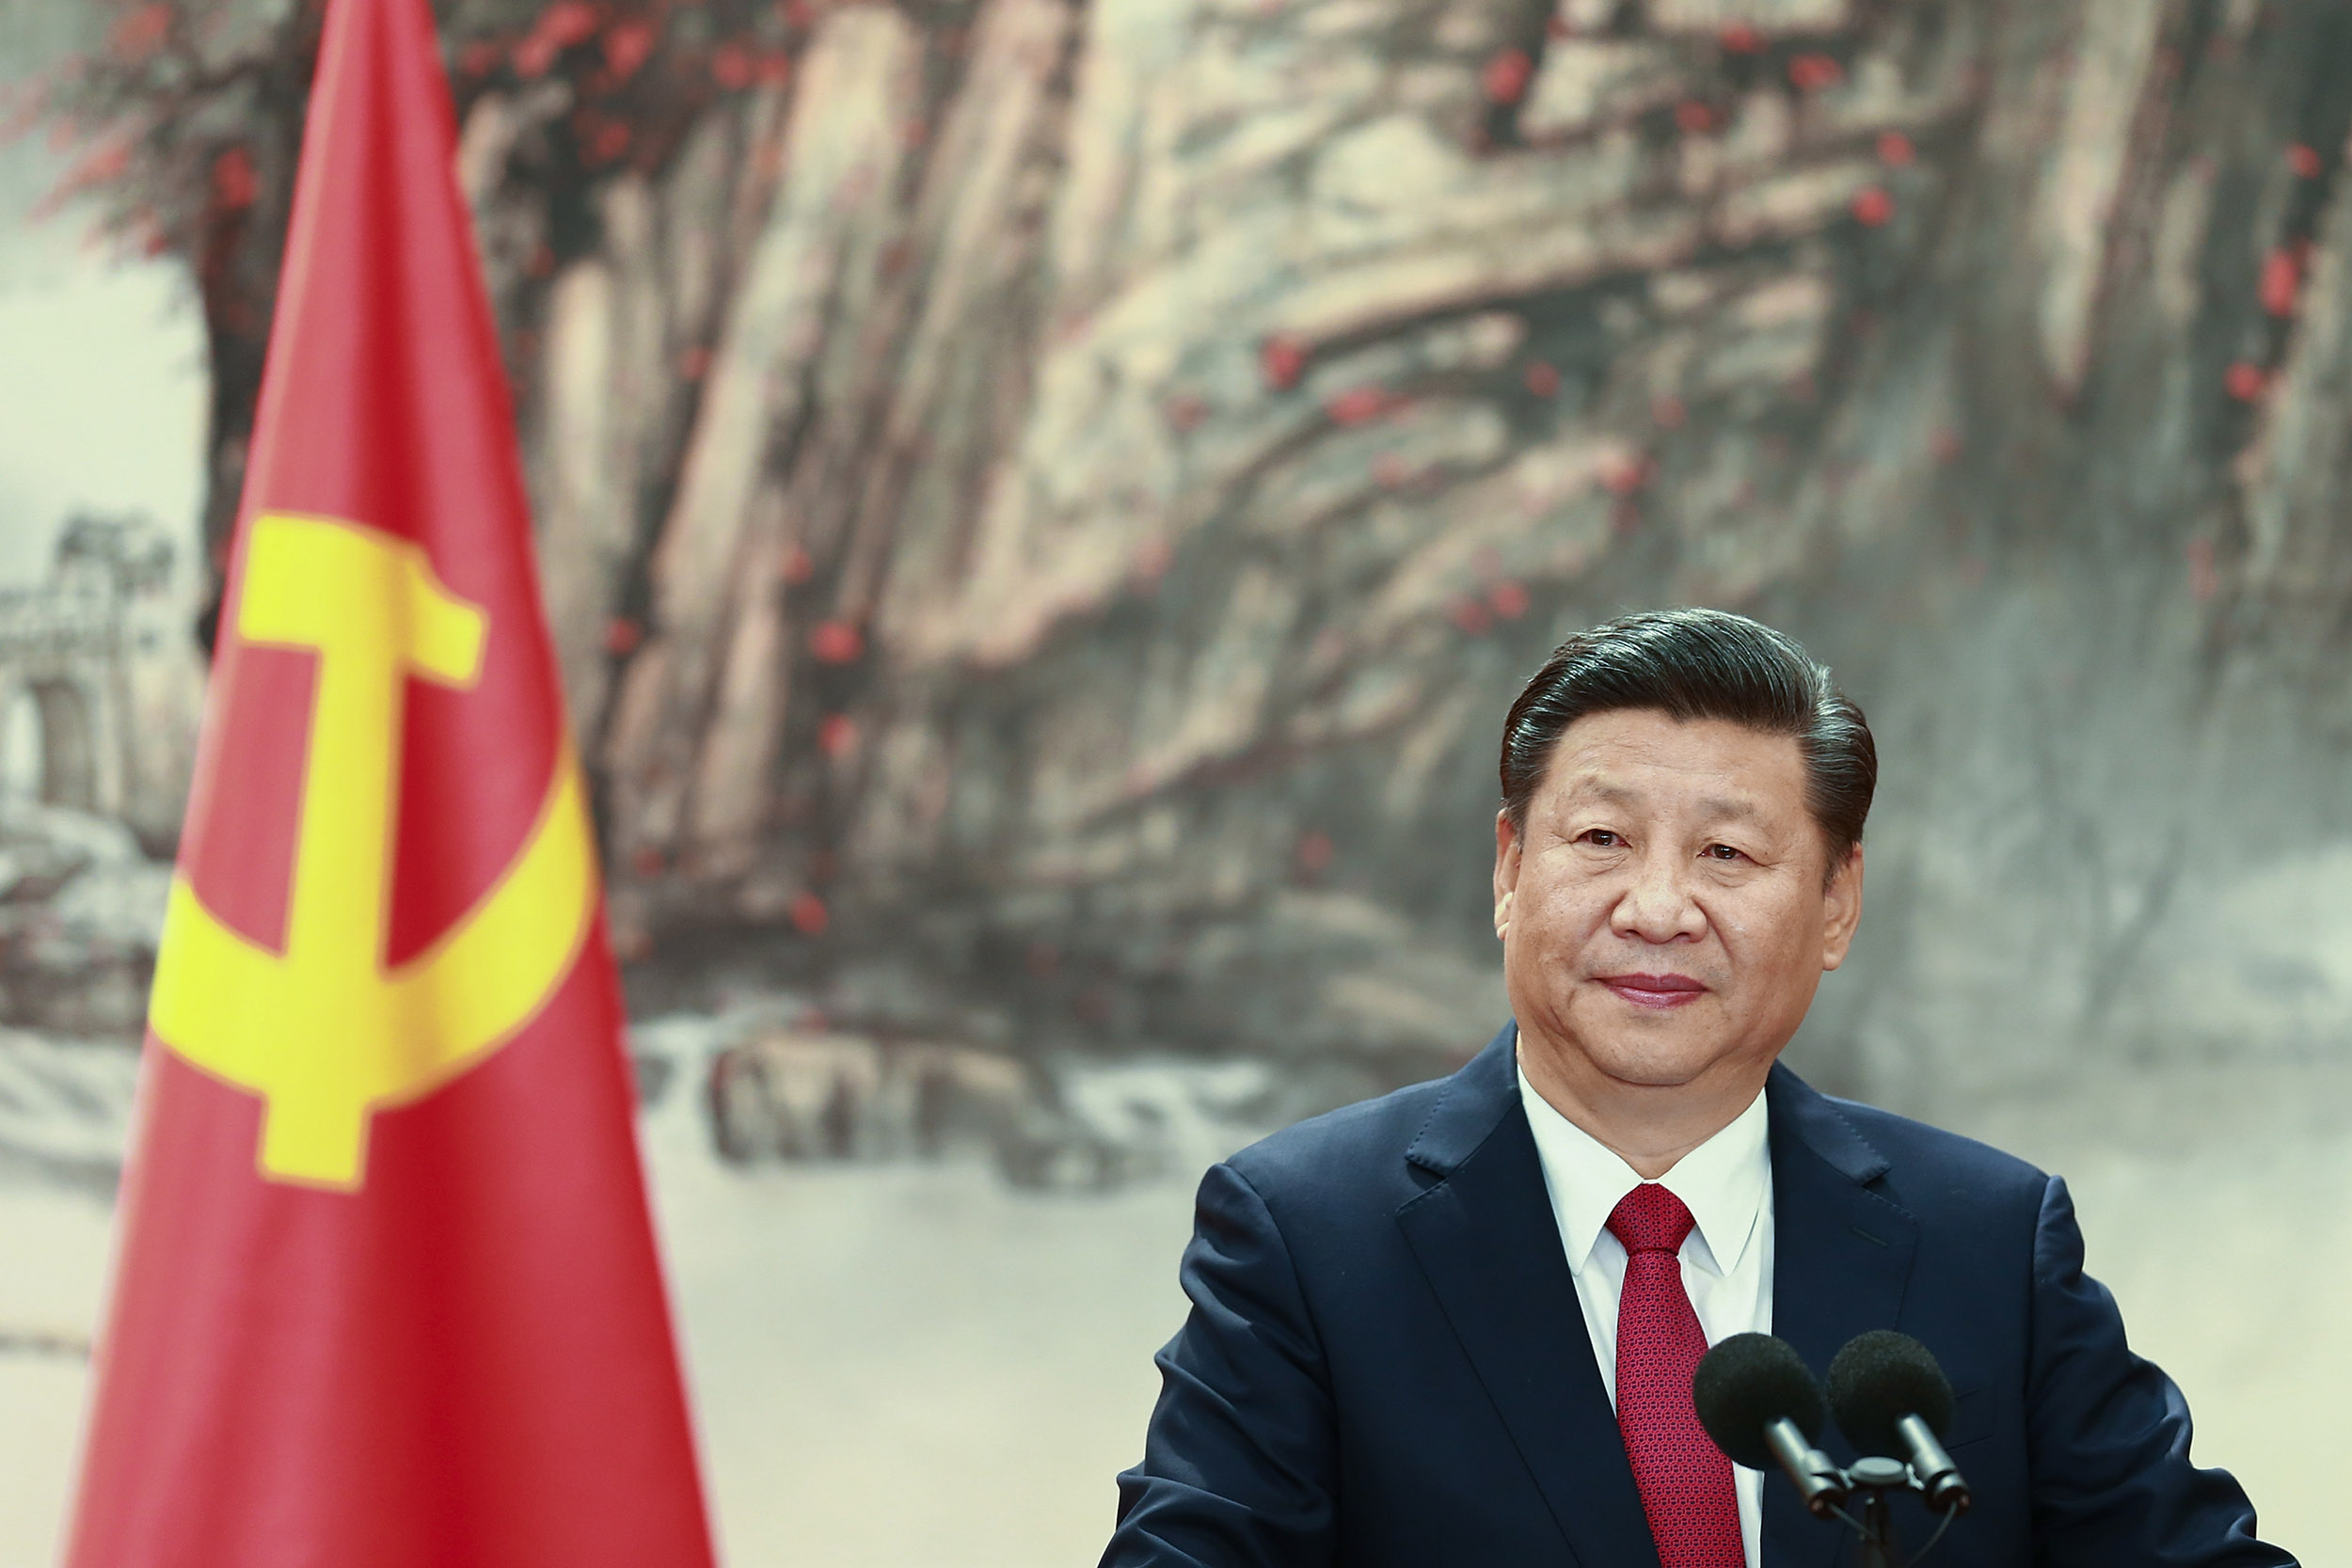 China to add 'Xi Jinping Thought' to national school curriculum